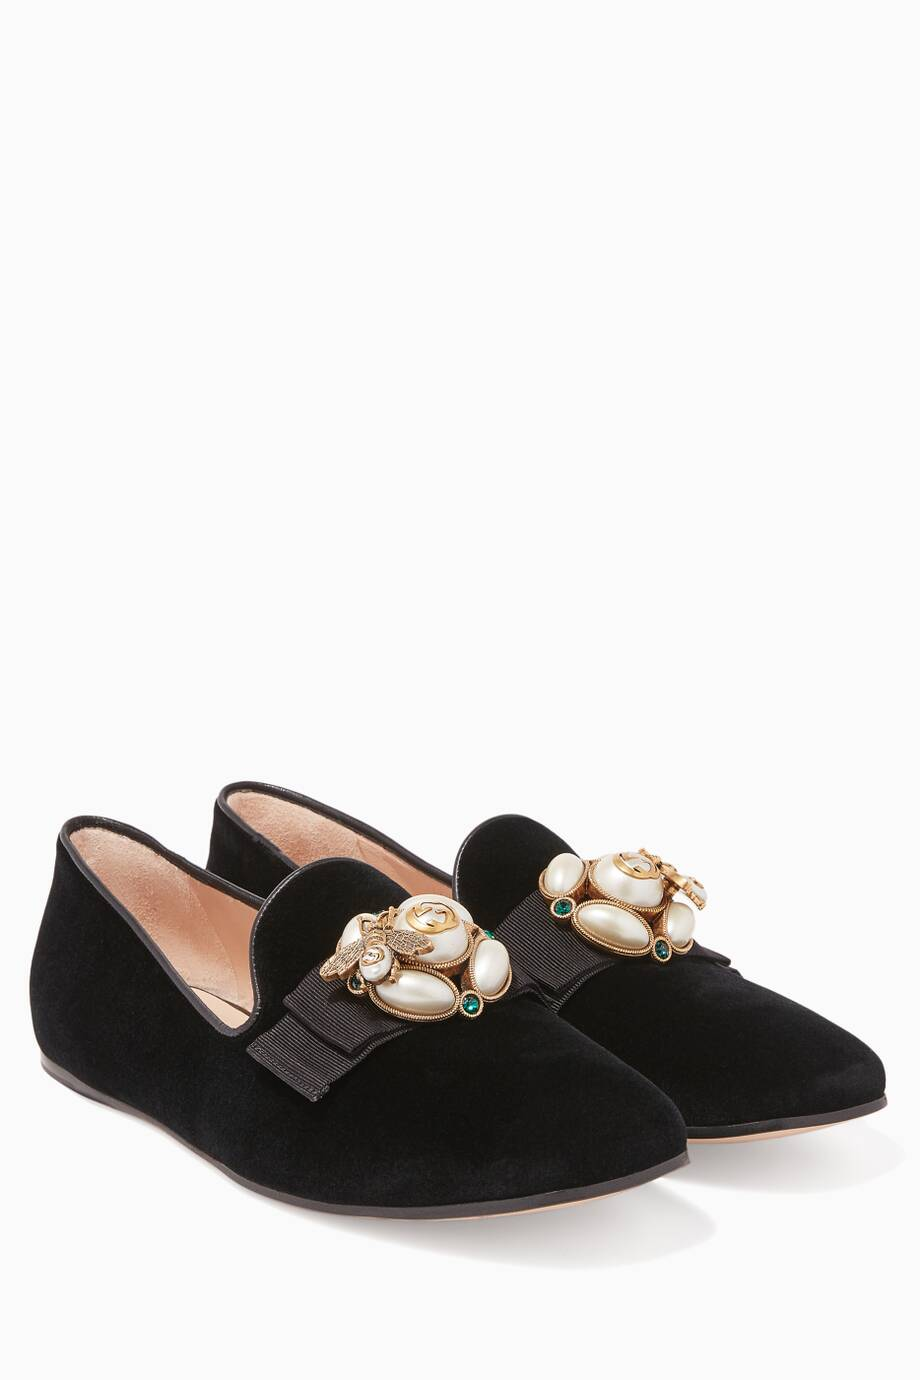 Etoile faux-pearl embellished velvet loafers Gucci 4T809MsV1O